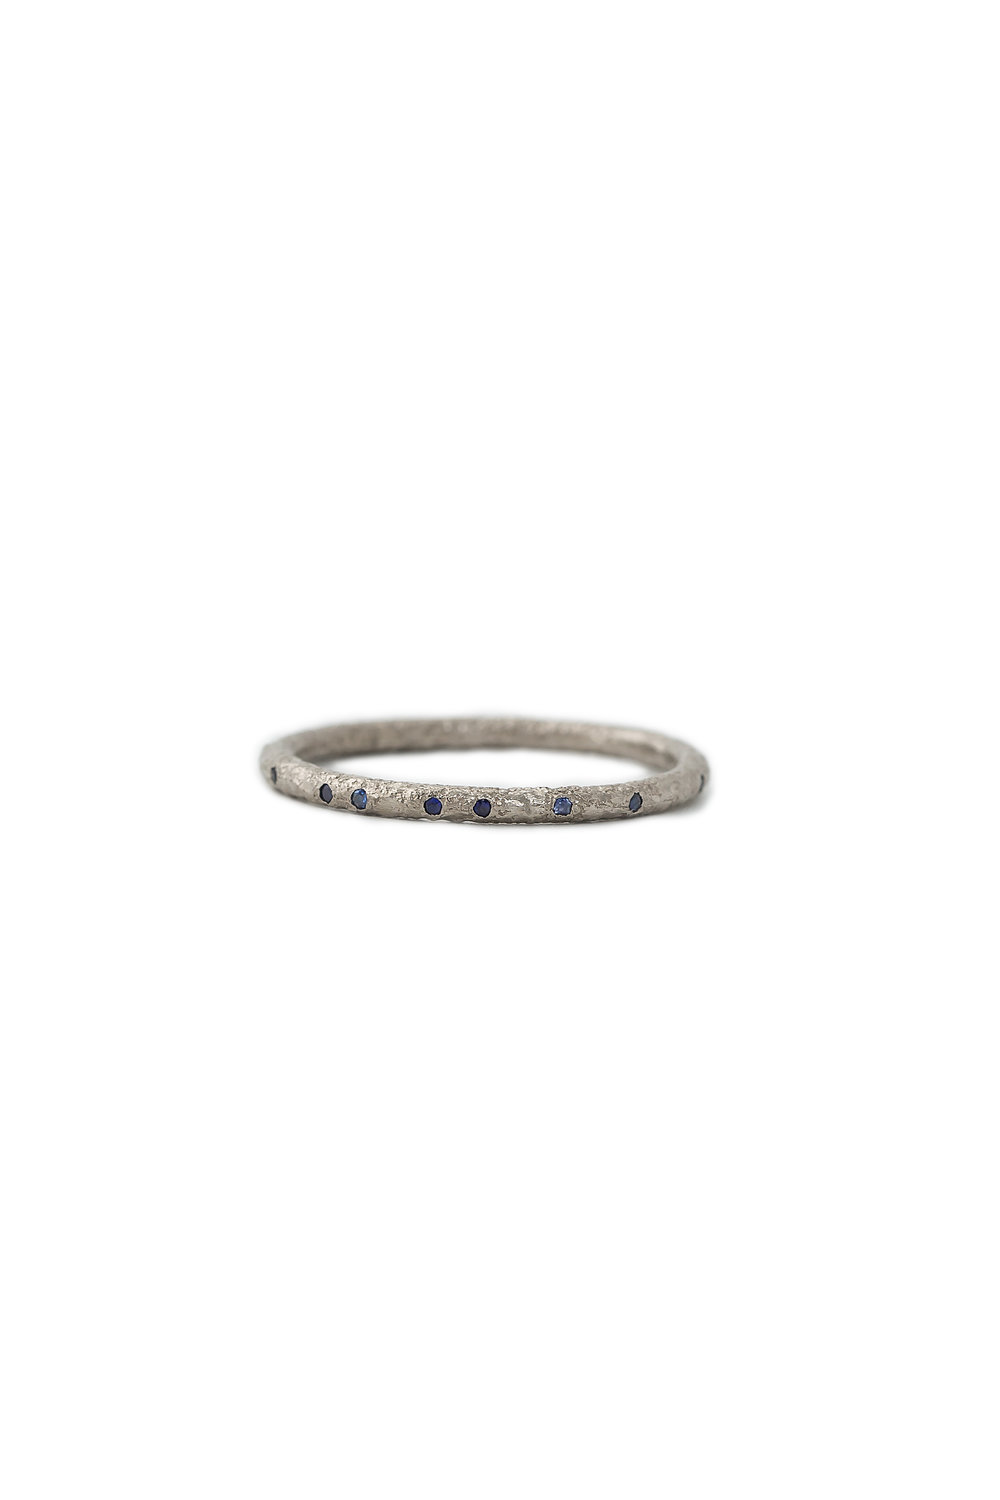 White gold eternity ring with sapphires